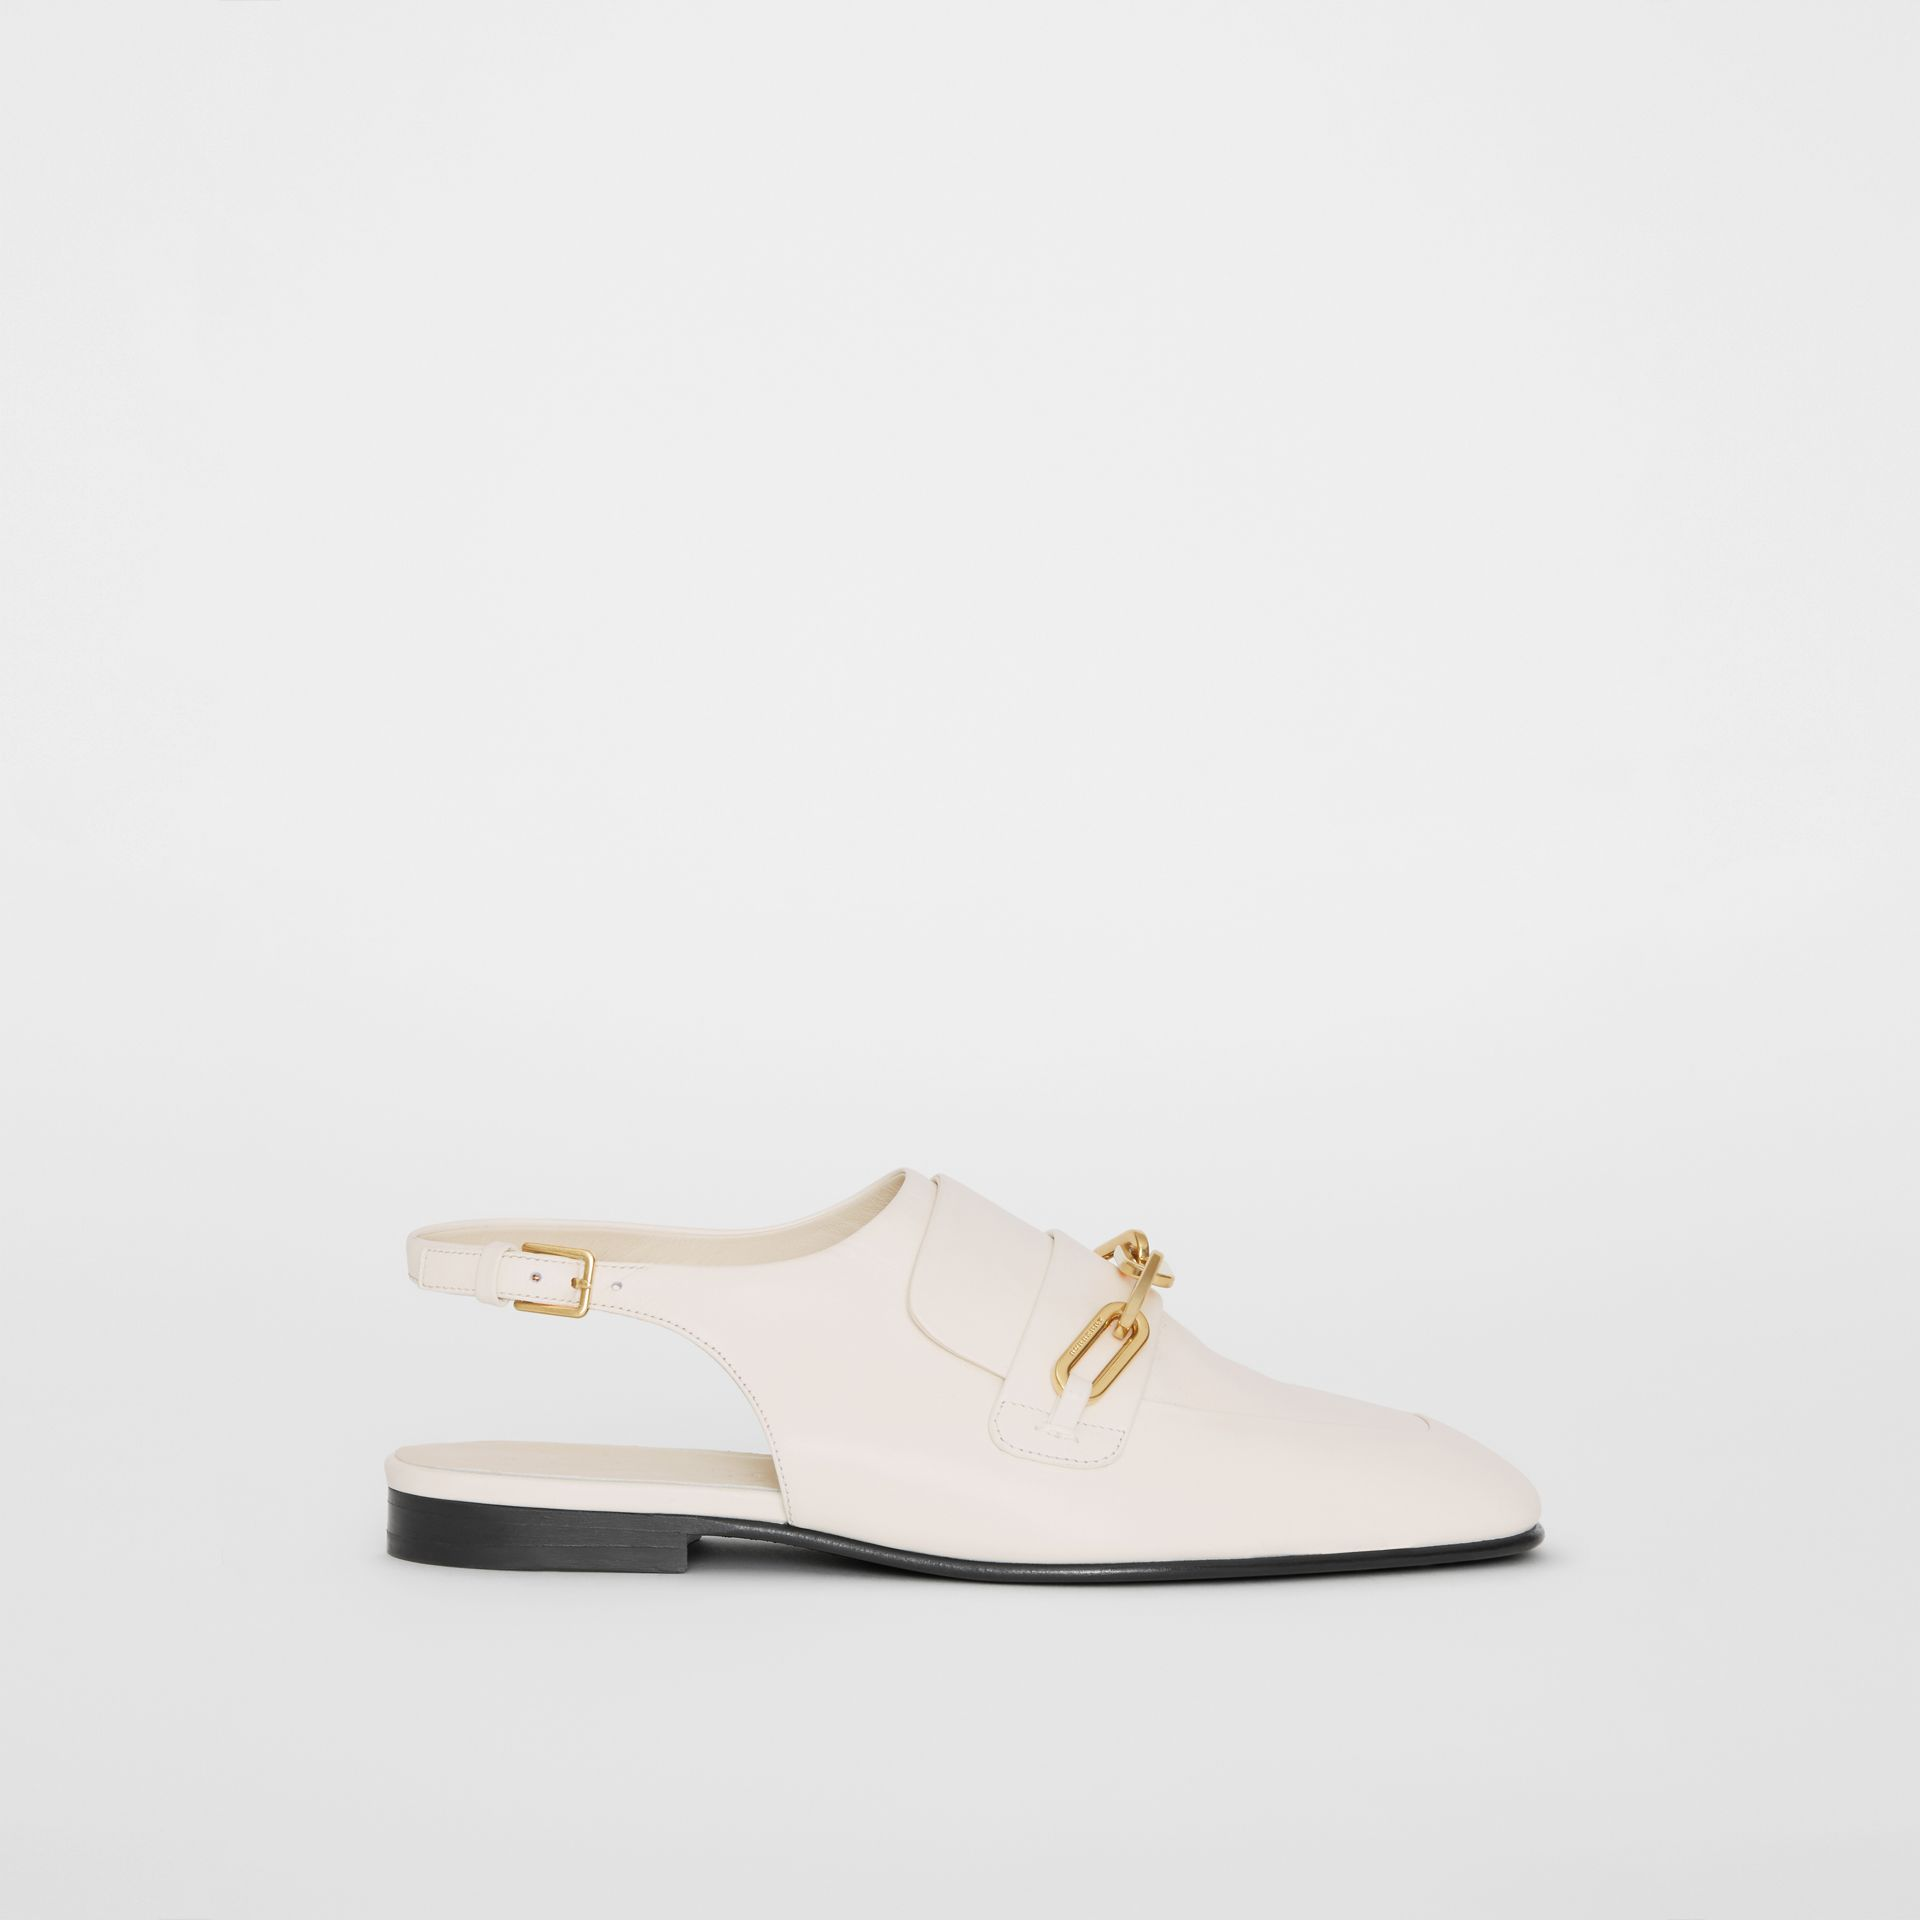 Link Detail Leather Slingback Loafers in Ash White - Women | Burberry - gallery image 5